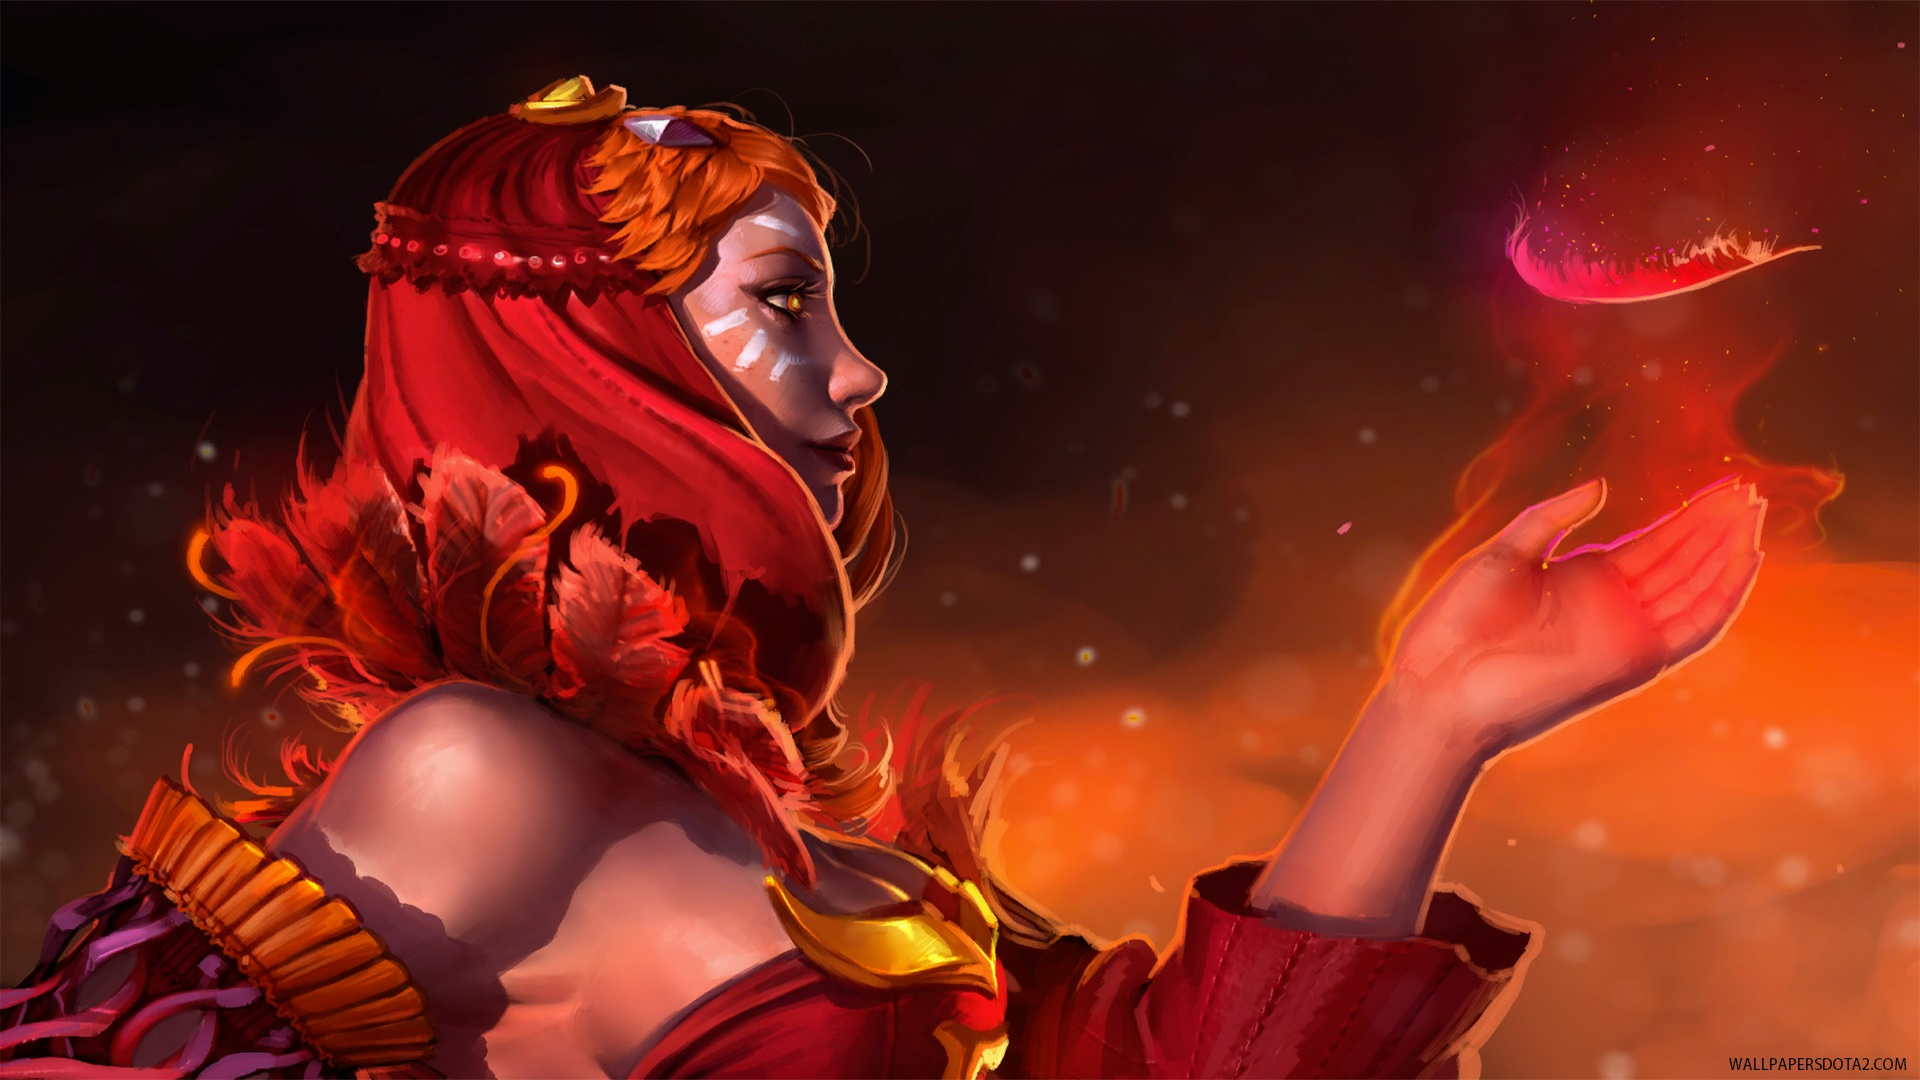 Lina desktop wallpaper high resolution Dota 2